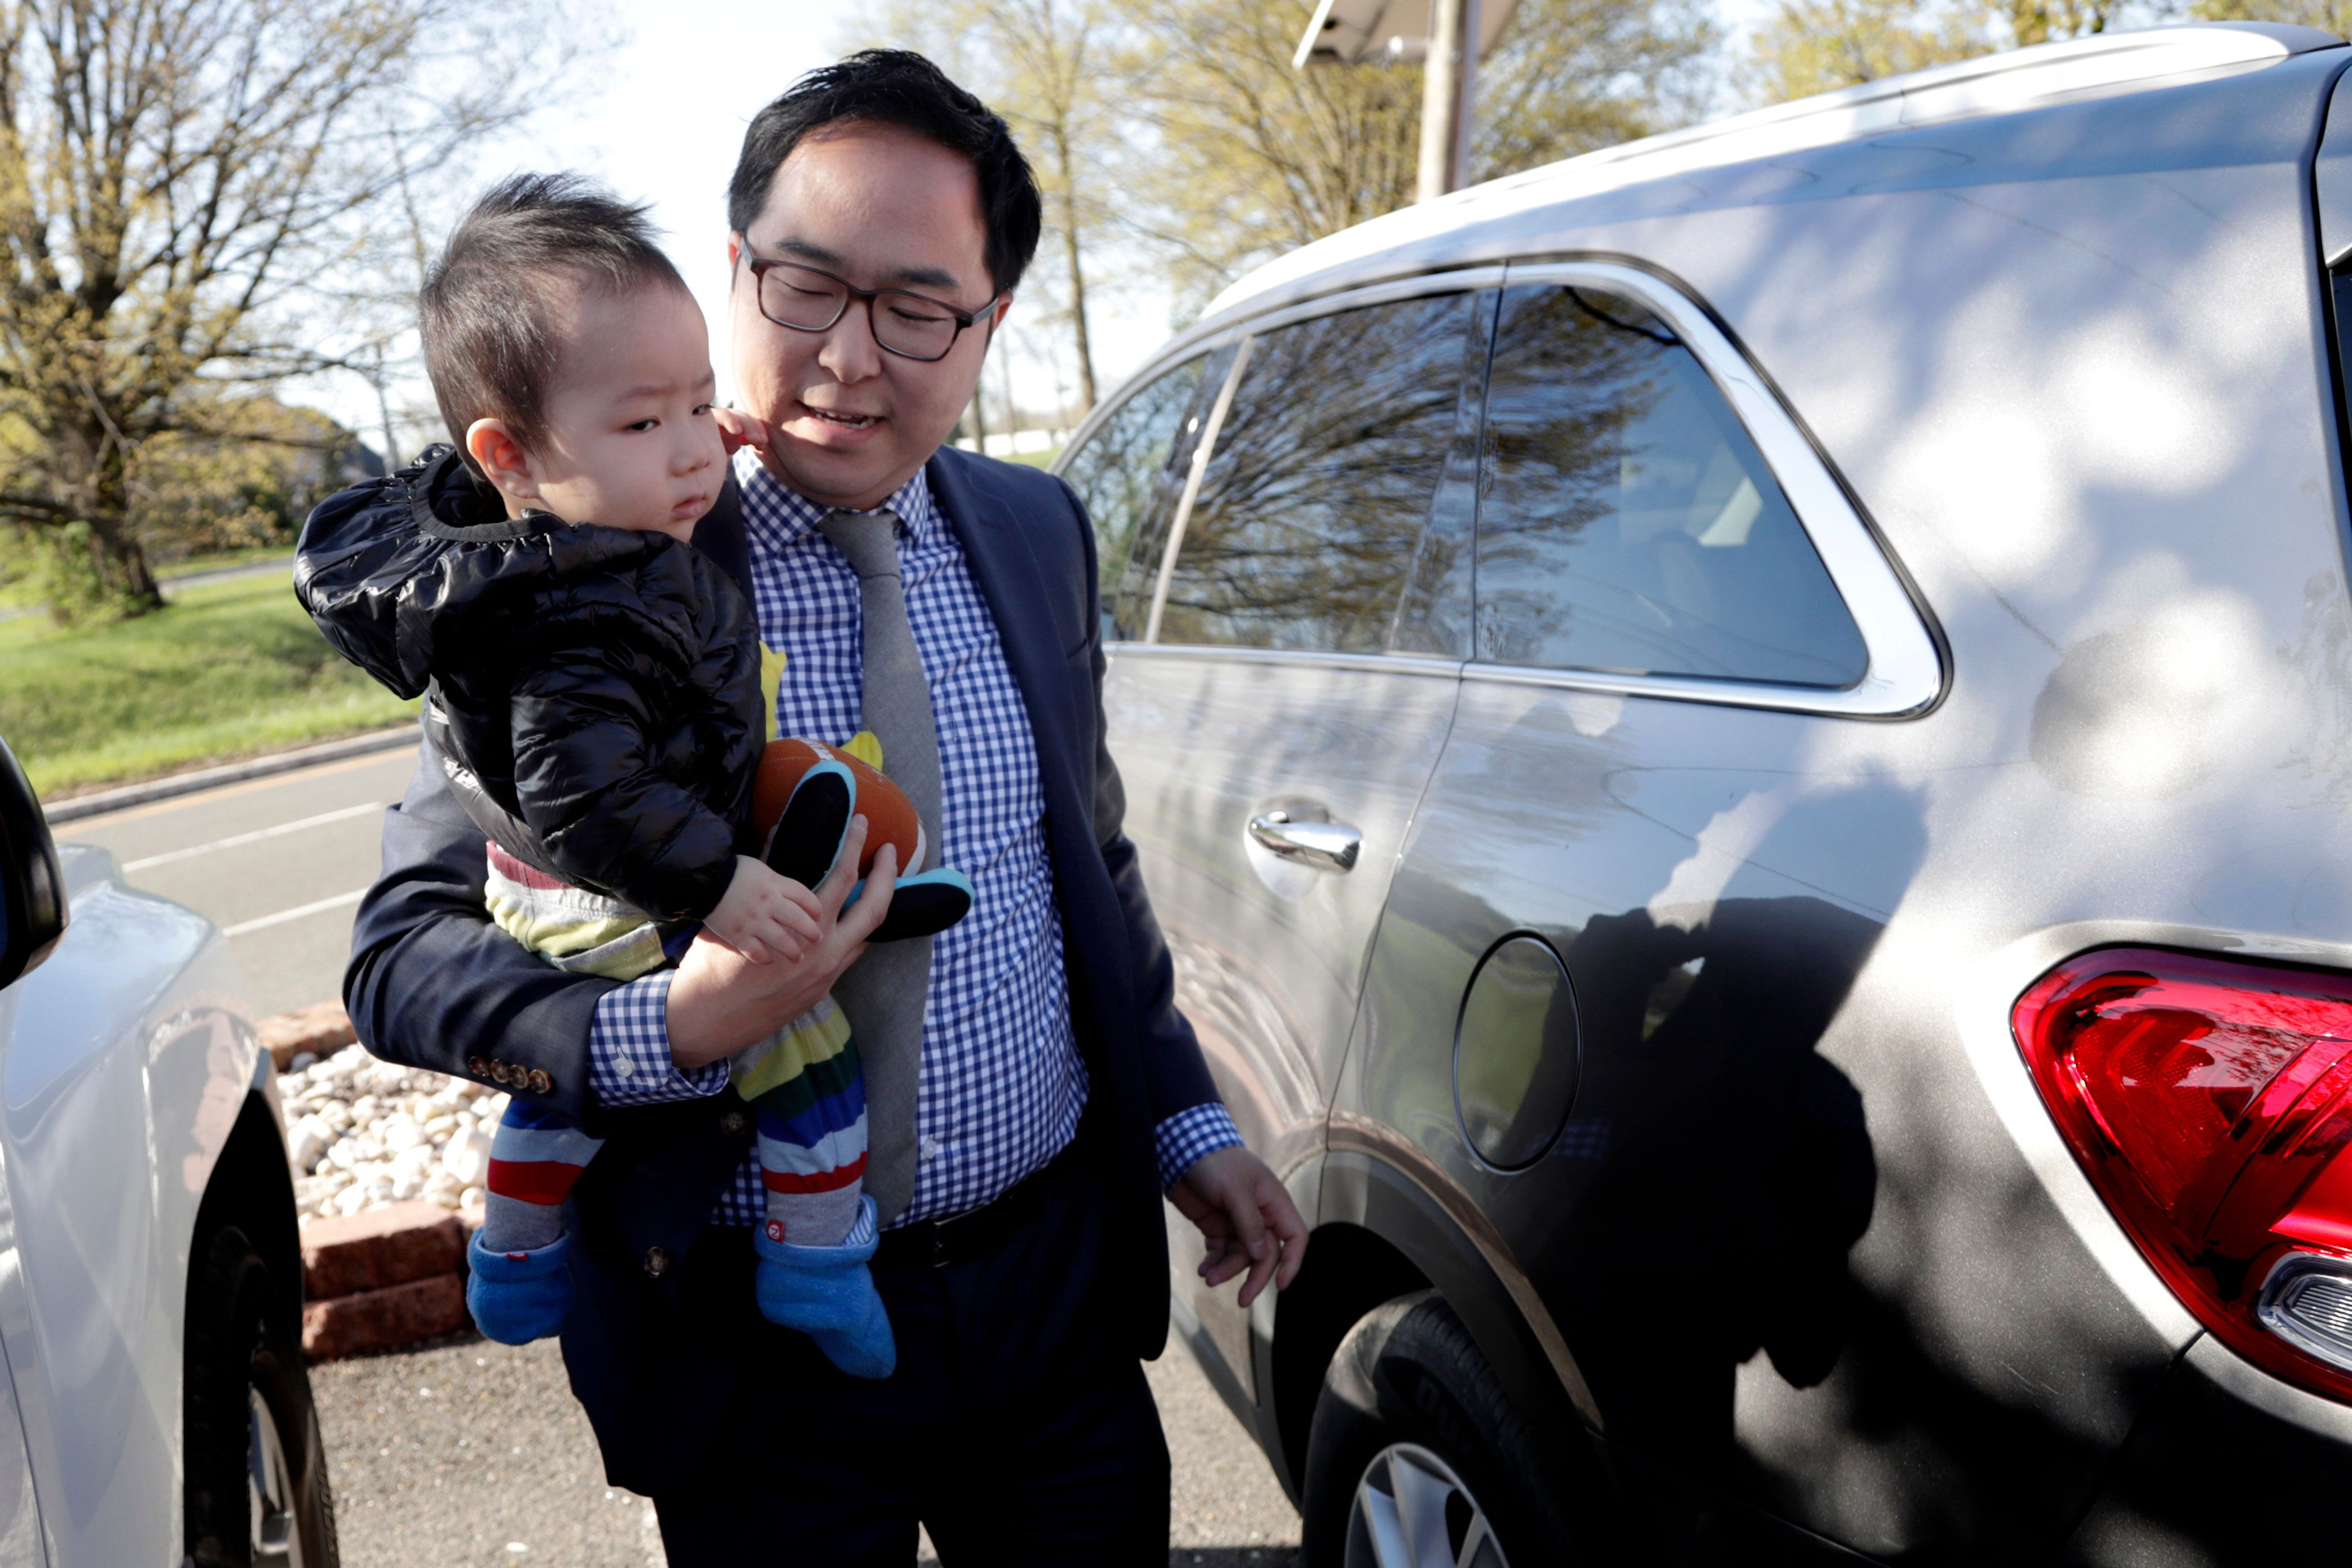 In a photo taken Tuesday, May 1, 2018, Andy Kim carries his 9-month-old son, August Kim, on his first day of school in Bordentown, N.J. Kim, who grew up in Marlton, N.J., is running for U.S. Congress. (AP Photo/Julio Cortez)